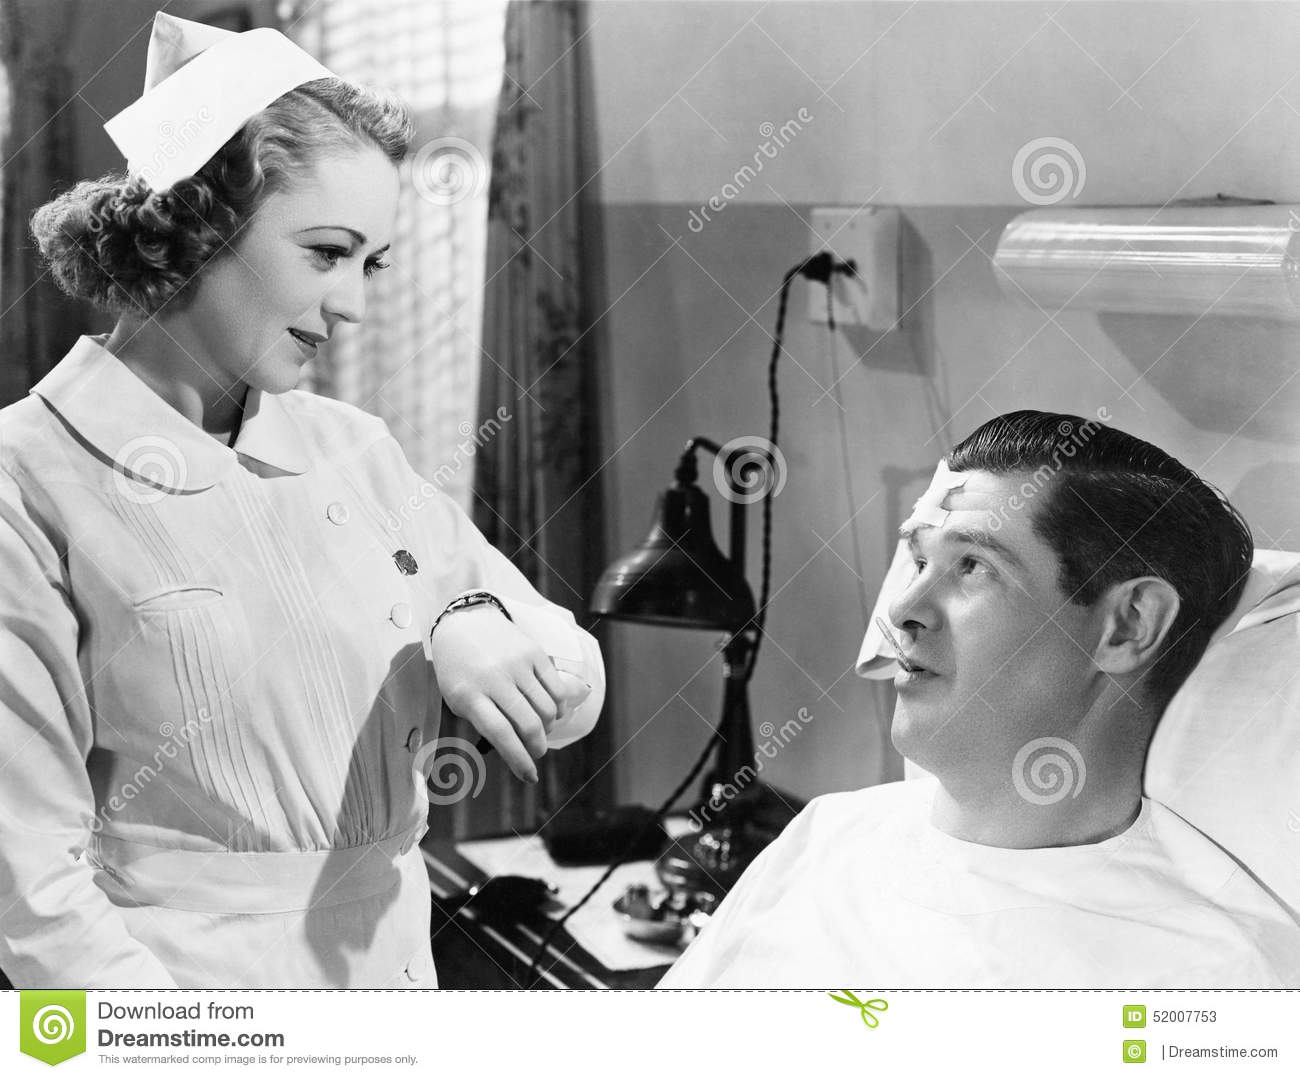 Download Nurse Taking Patients Temperature Stock Image - Image of 30, fondness: 52007753